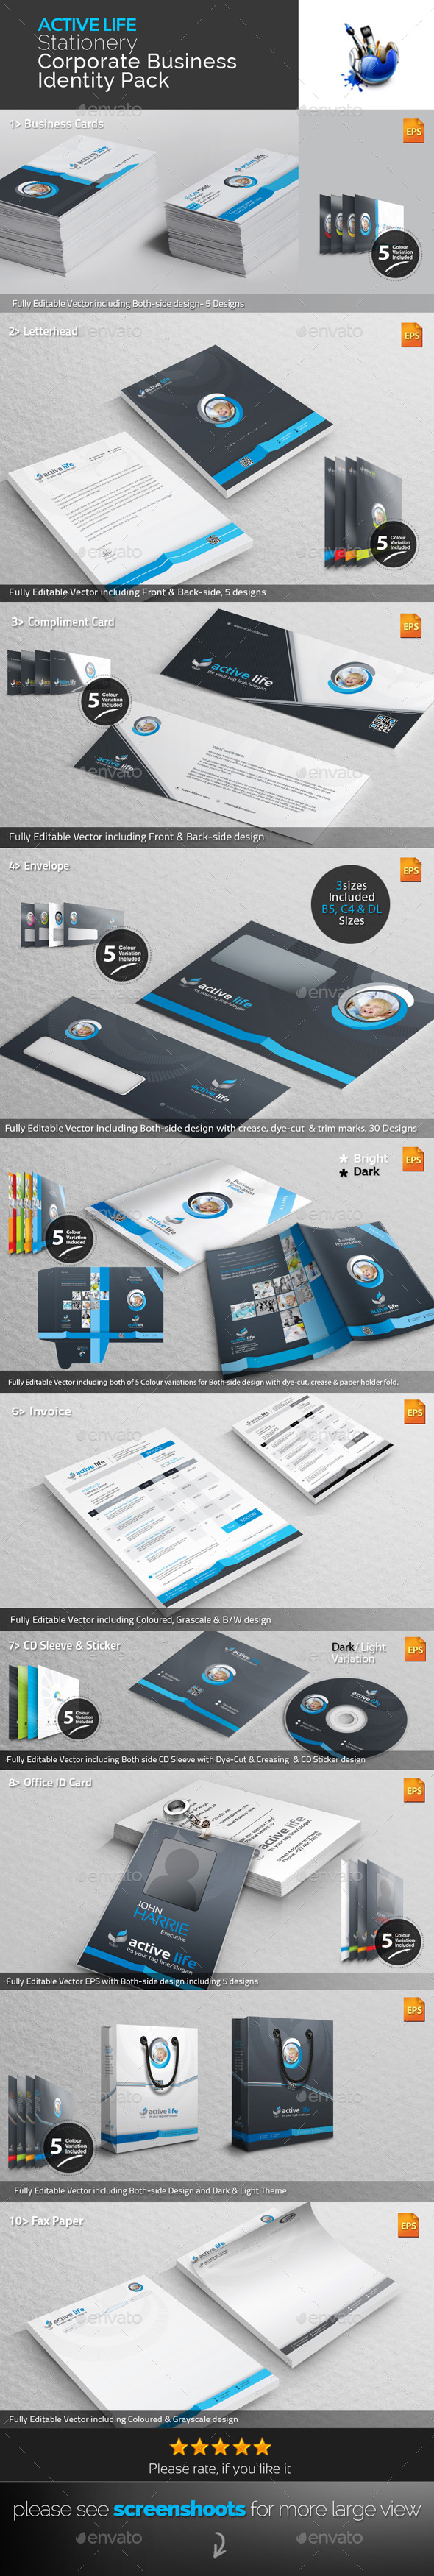 GraphicRiver Stationery Corporate Business Identity Pack 9258517